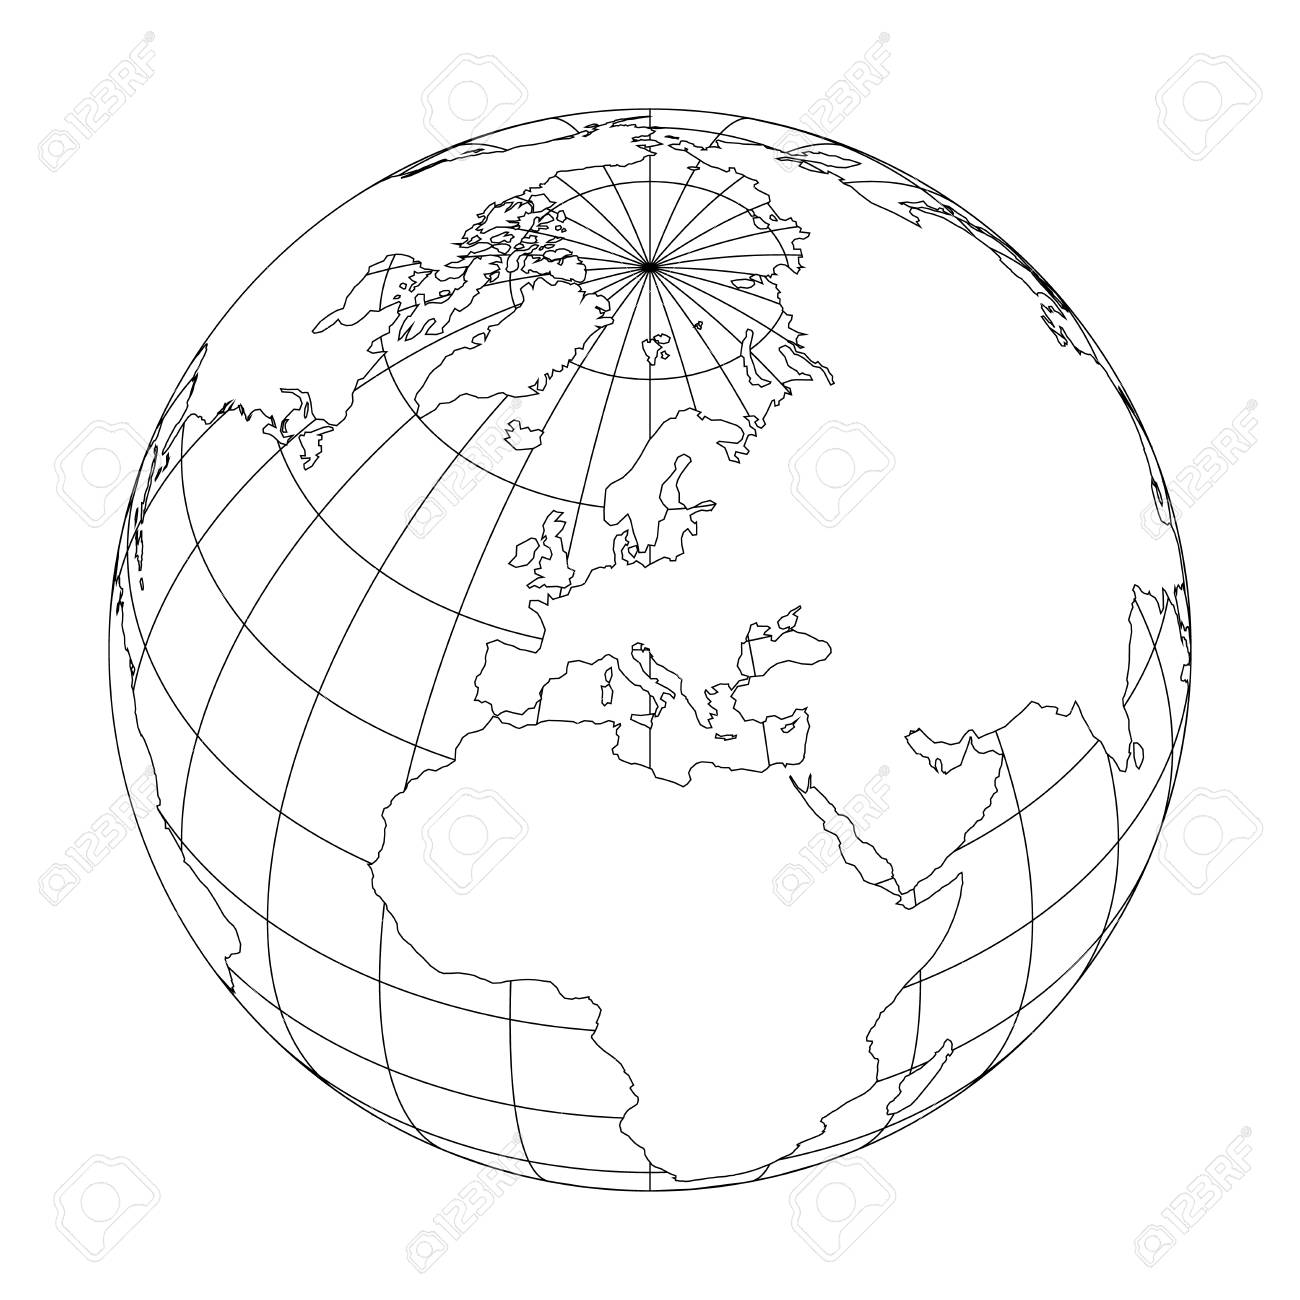 Outline Earth globe with map of World focused on Europe. Vector..